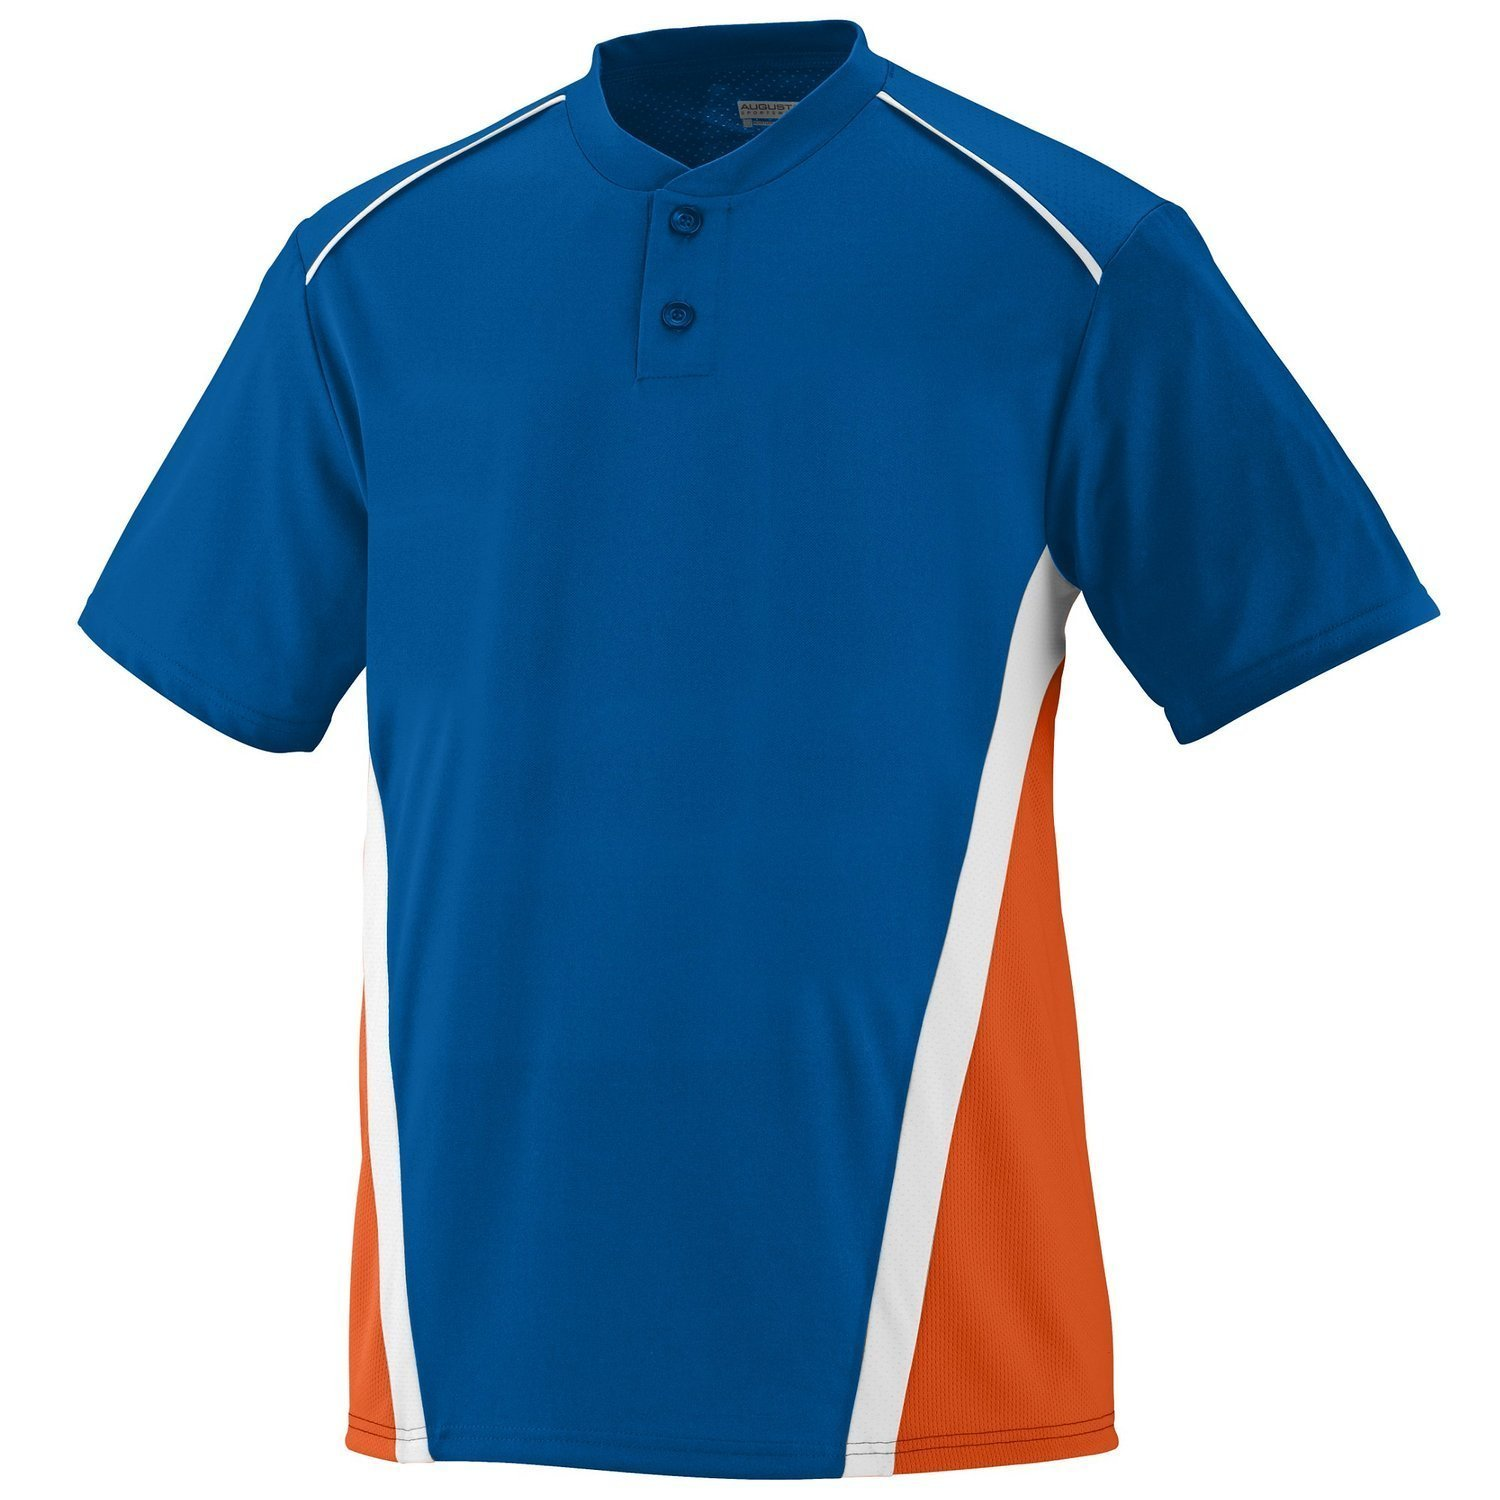 Augusta SportswearメンズRBI野球ジャージー B00IWLYBCM Medium|Royal/Orange/White Royal/Orange/White Medium